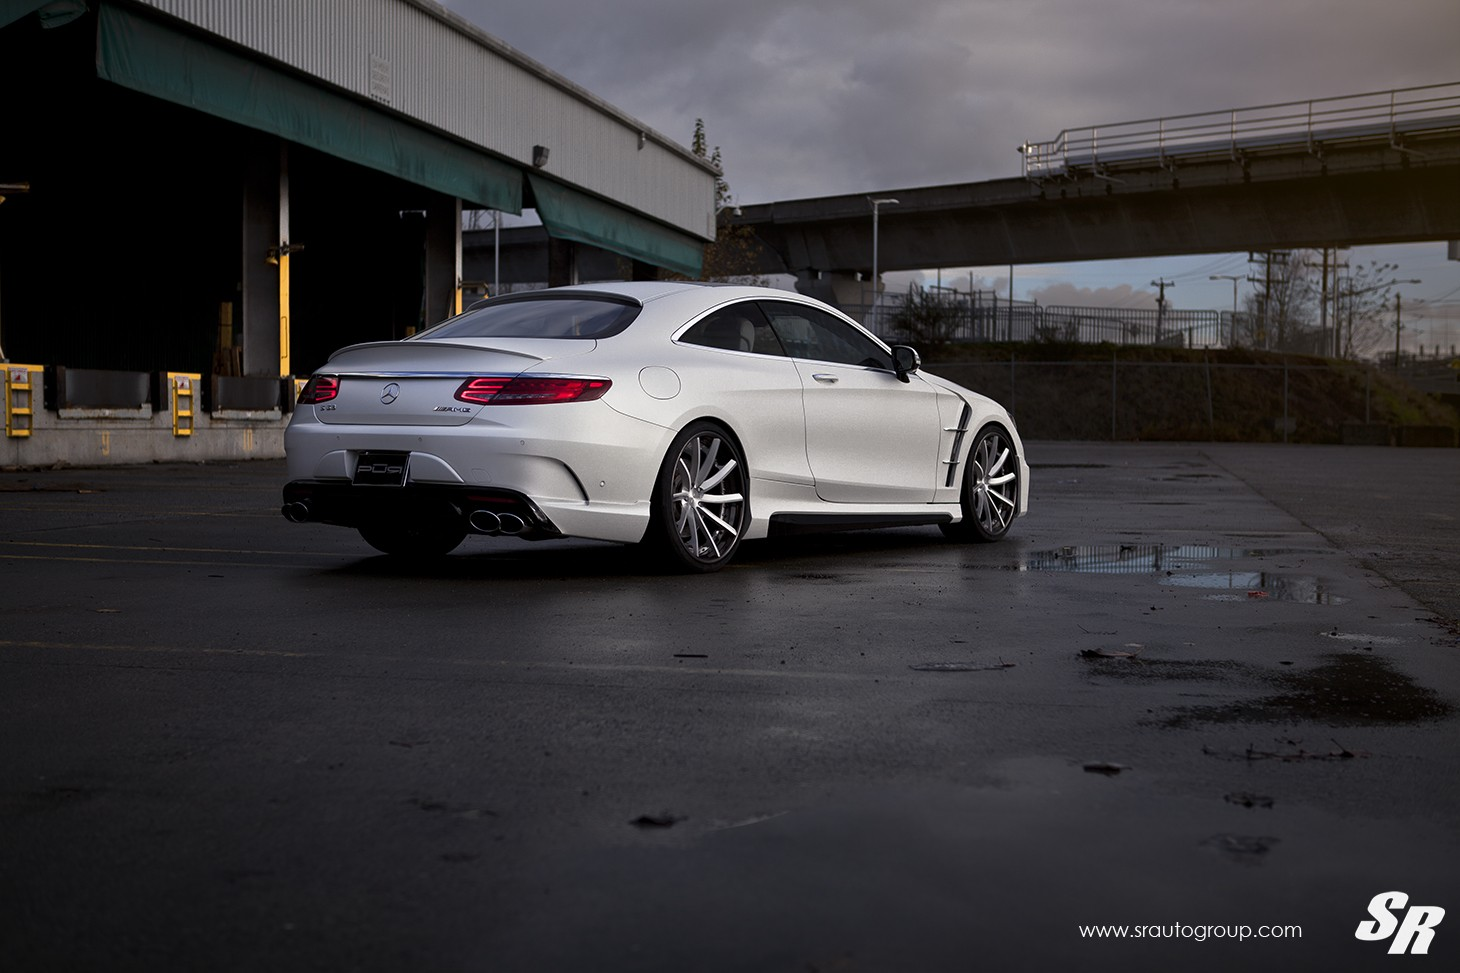 Mercedes amg s63 coupe gets wald body kit and pur wheels for Mercedes benz amg kit